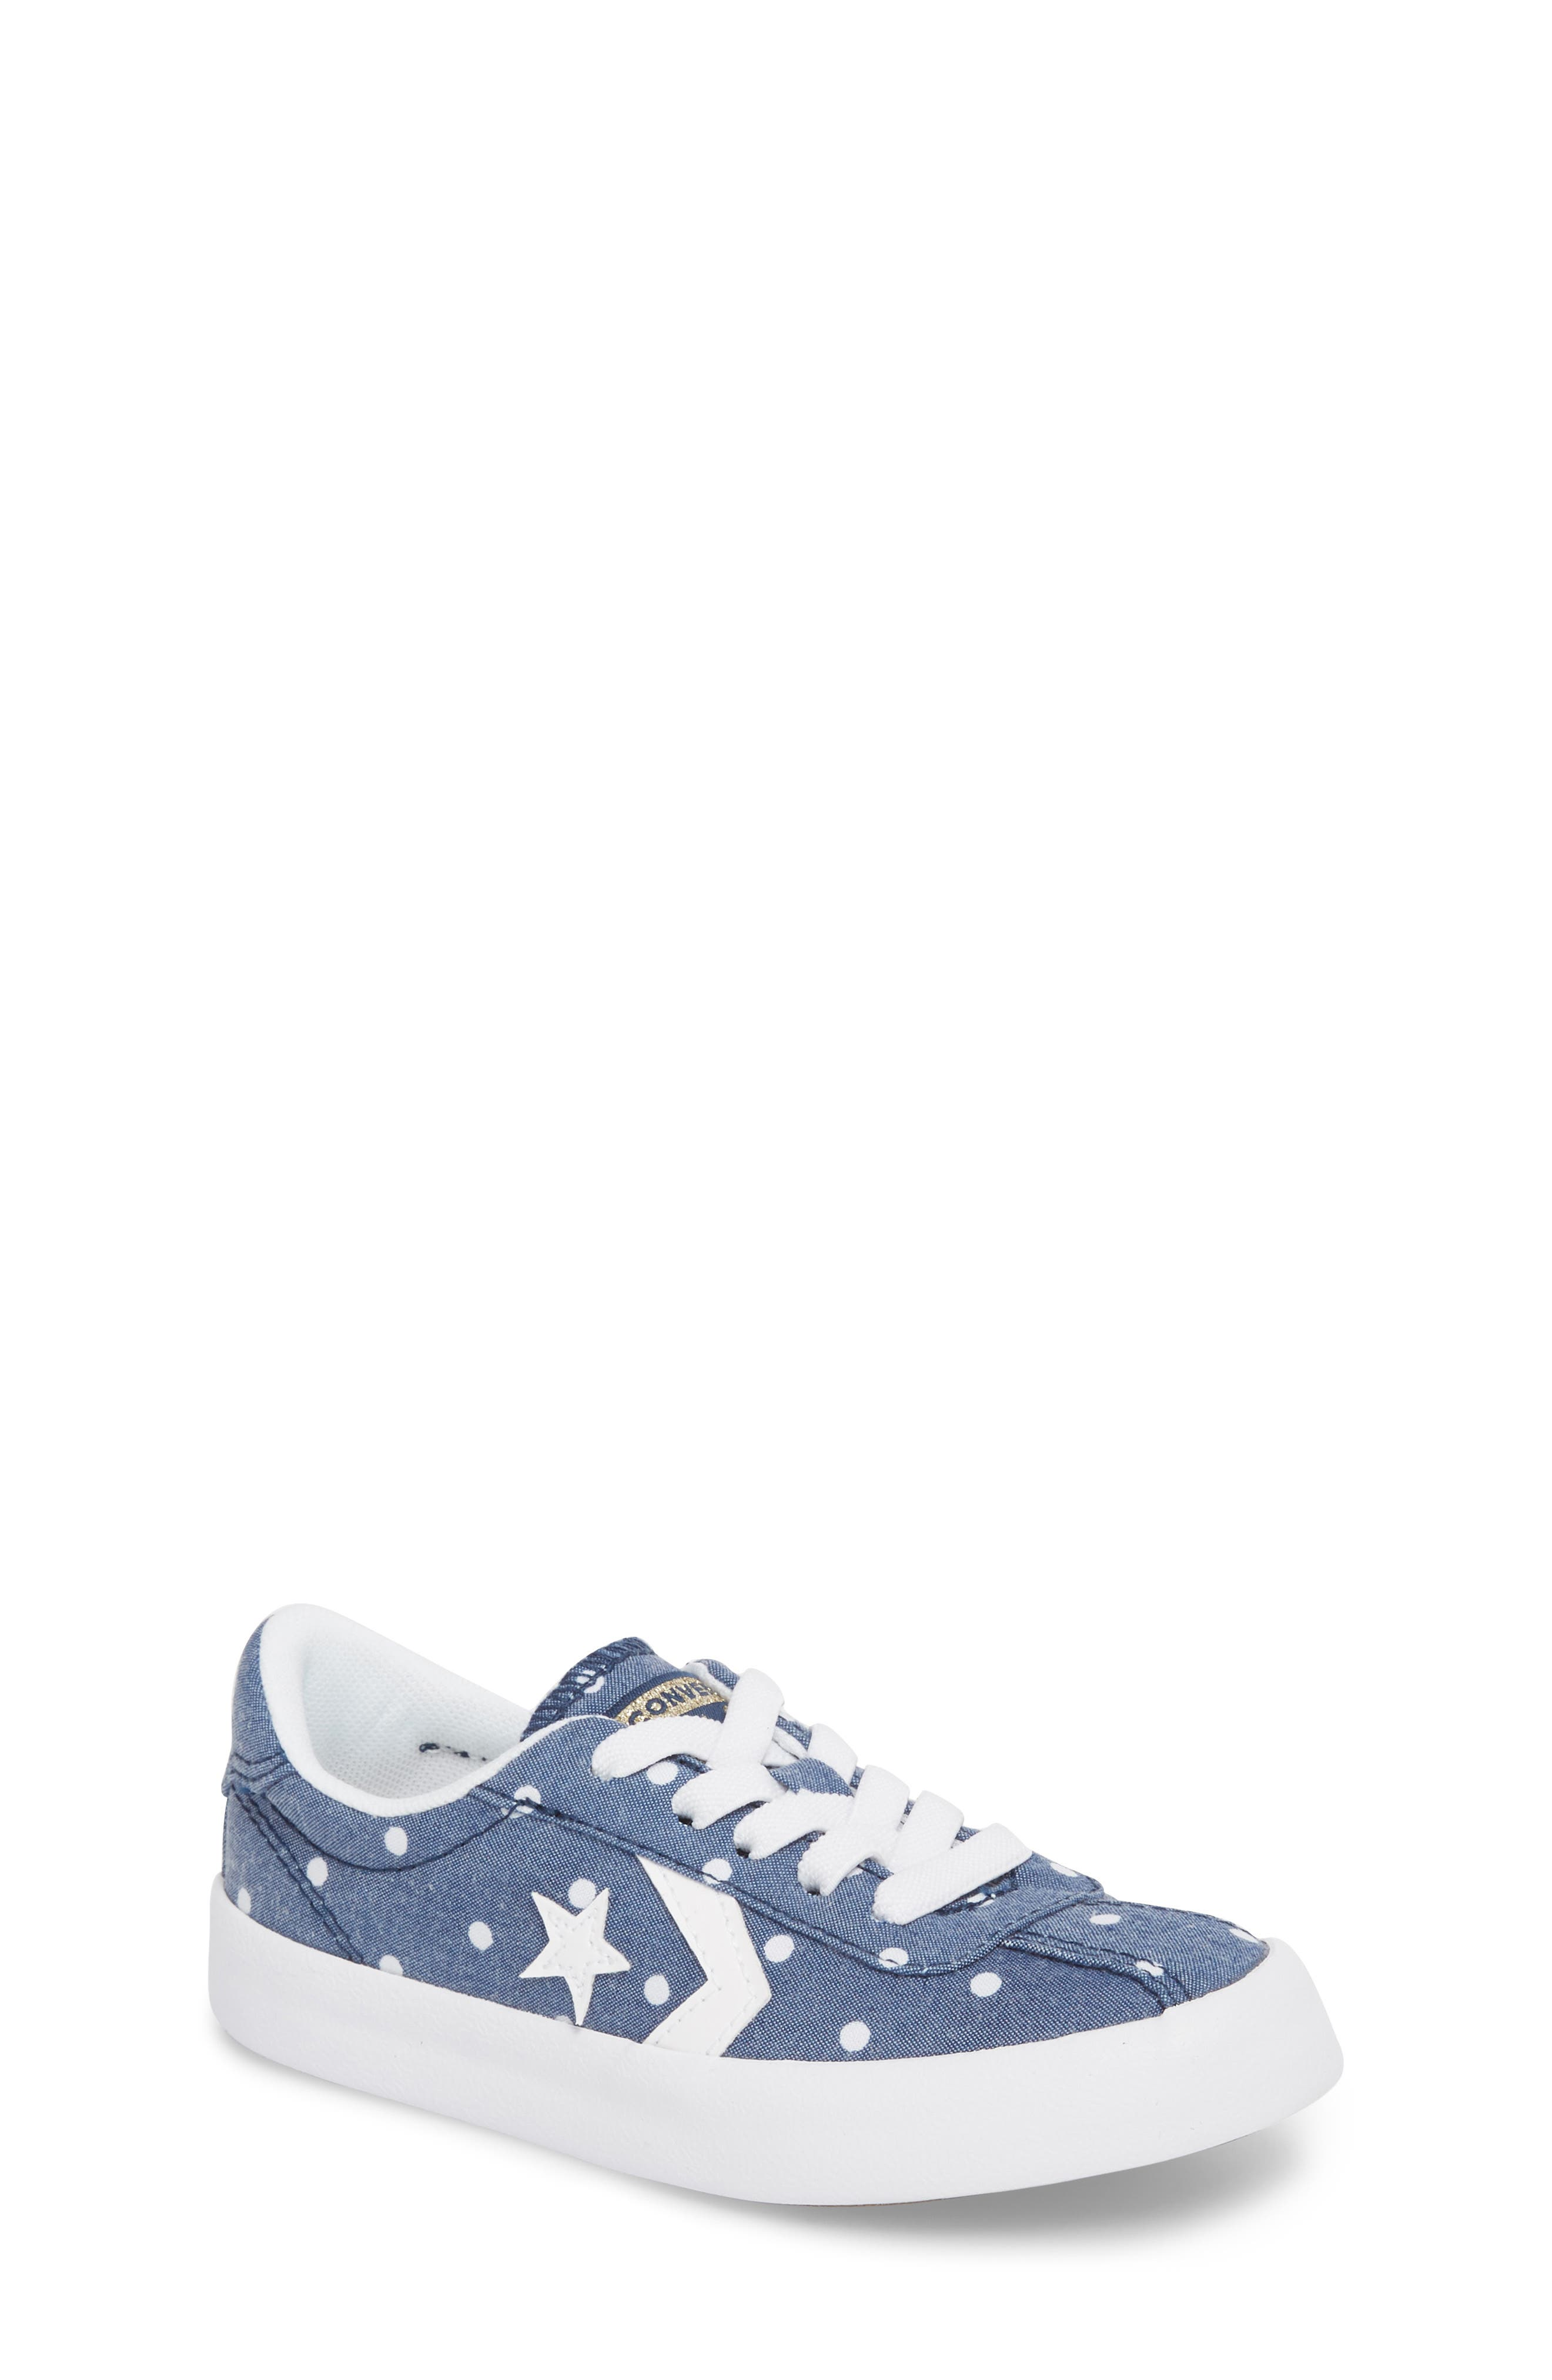 Breakpoint Polka Dot Sneaker,                             Main thumbnail 1, color,